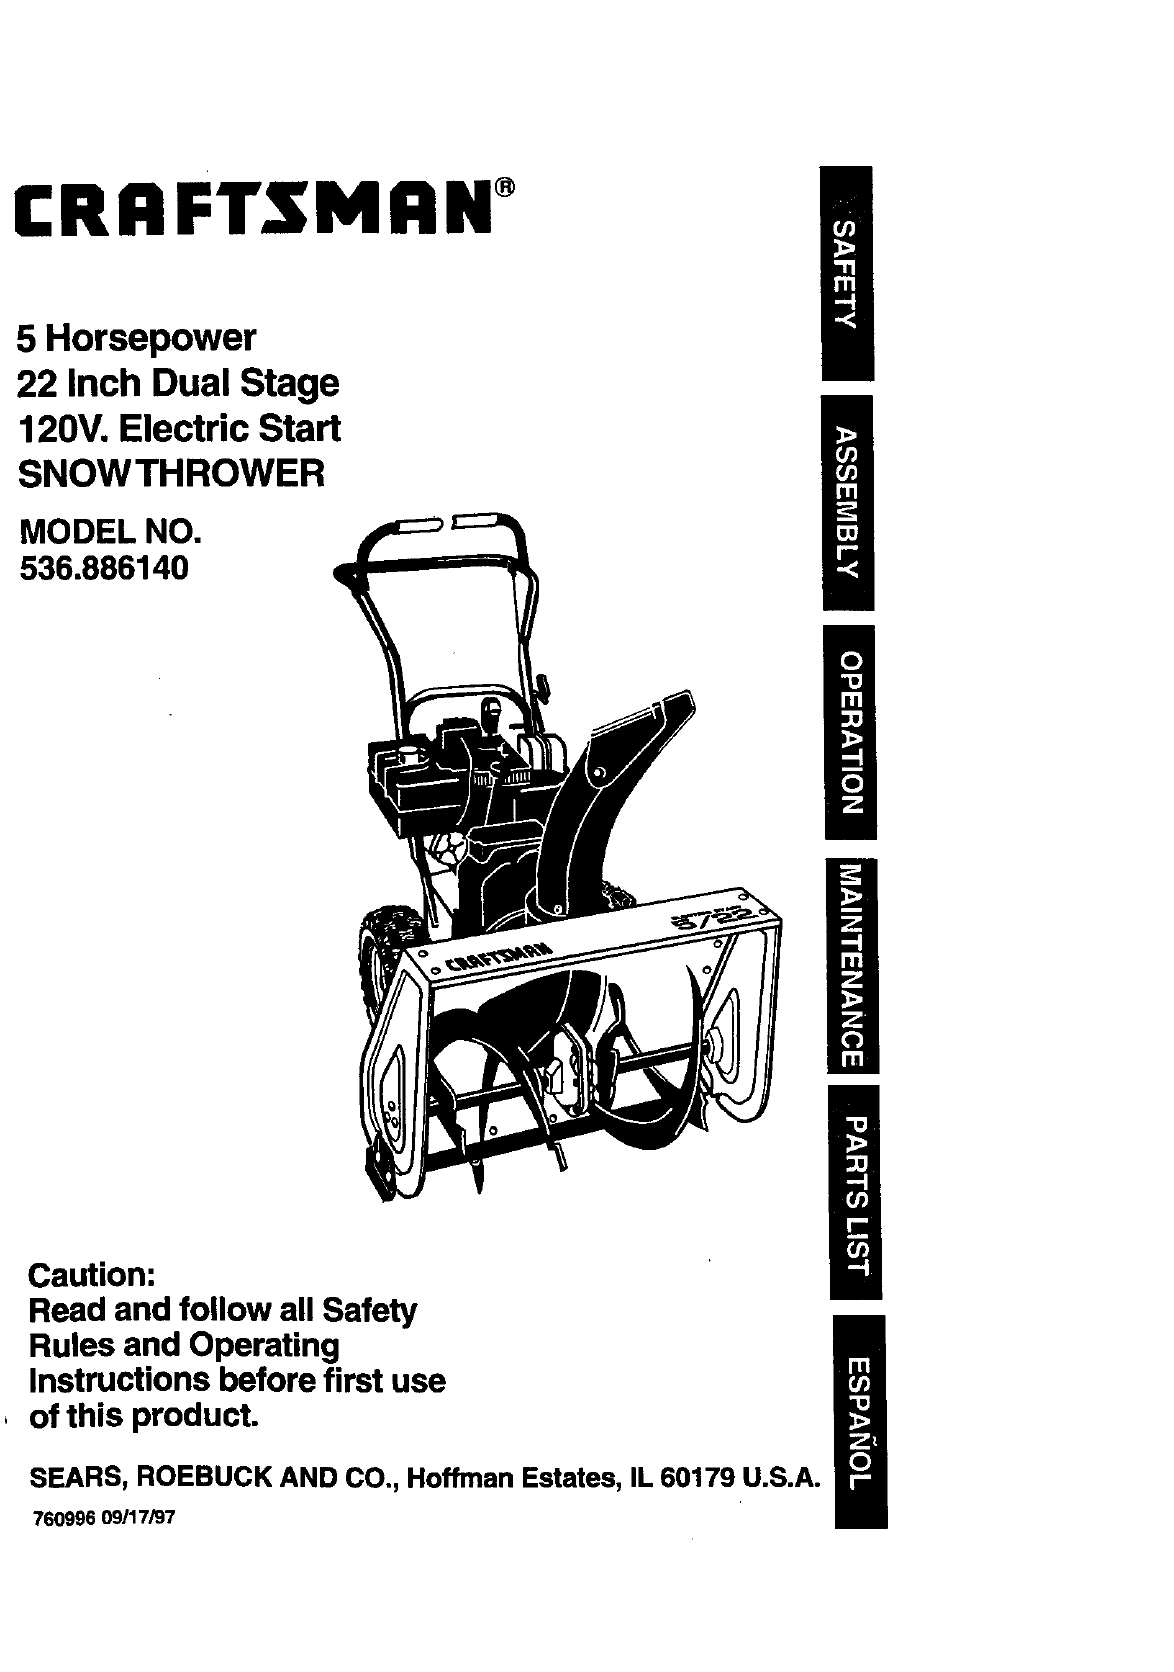 John Deere 47 Quick Switch Snowblower Parts Diagram, John